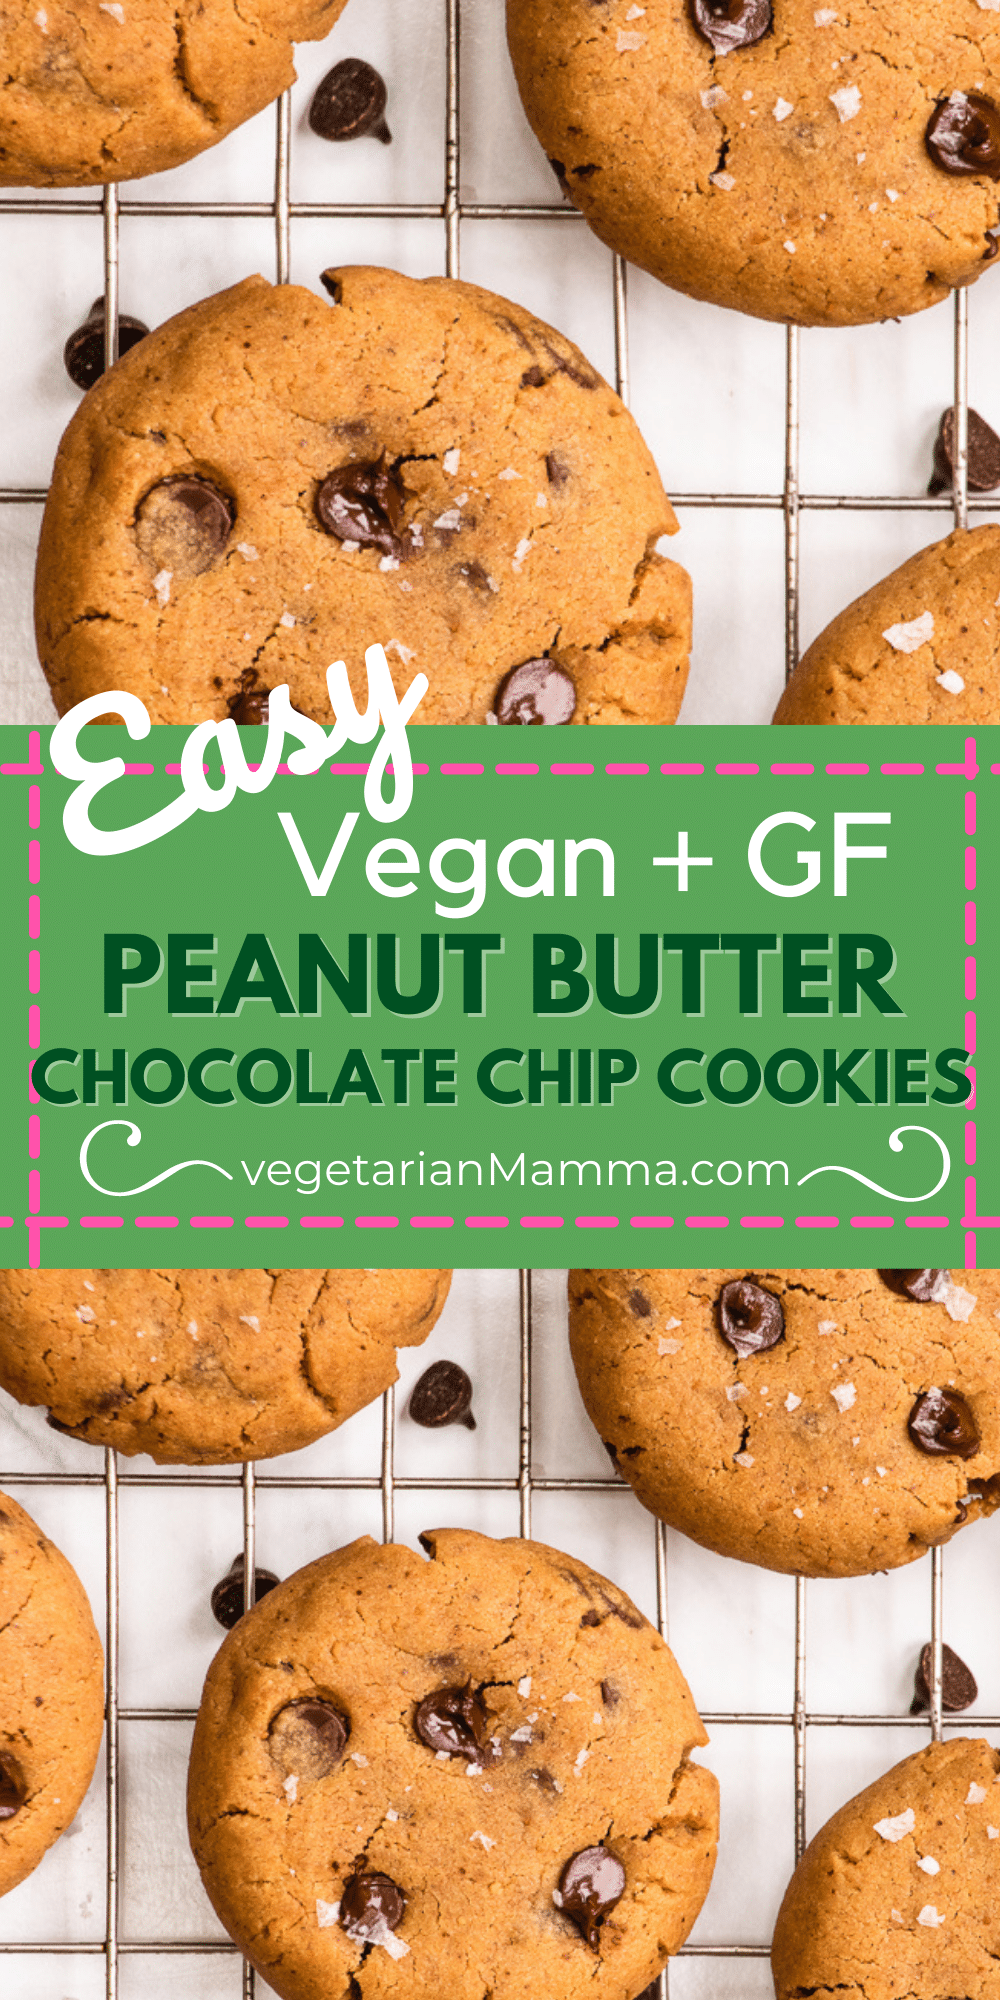 Vegan Peanut Butter Chocolate Chip Cookies are chewy, soft, and packed with chocolate! These are truly the best gluten-free cookies you'll ever make.